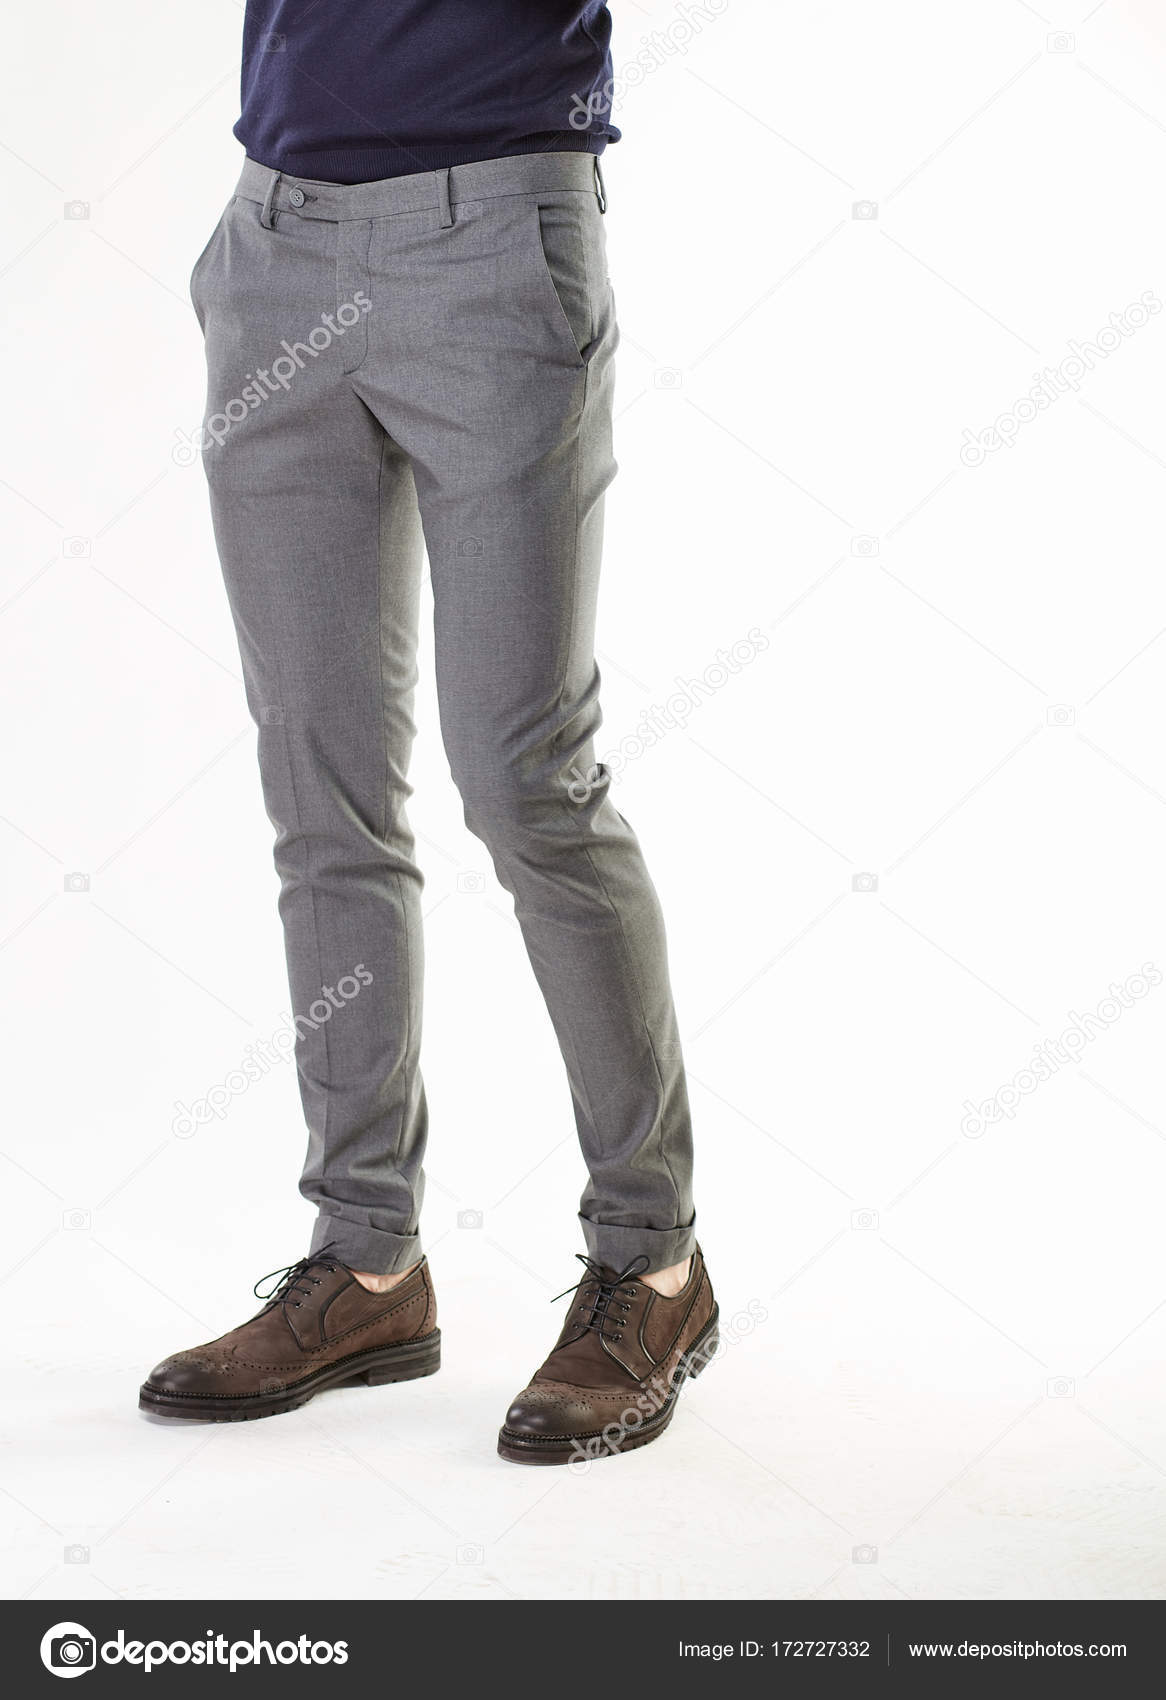 Man Model Posing In Gray Pants And Brown Shoes In Light Studio